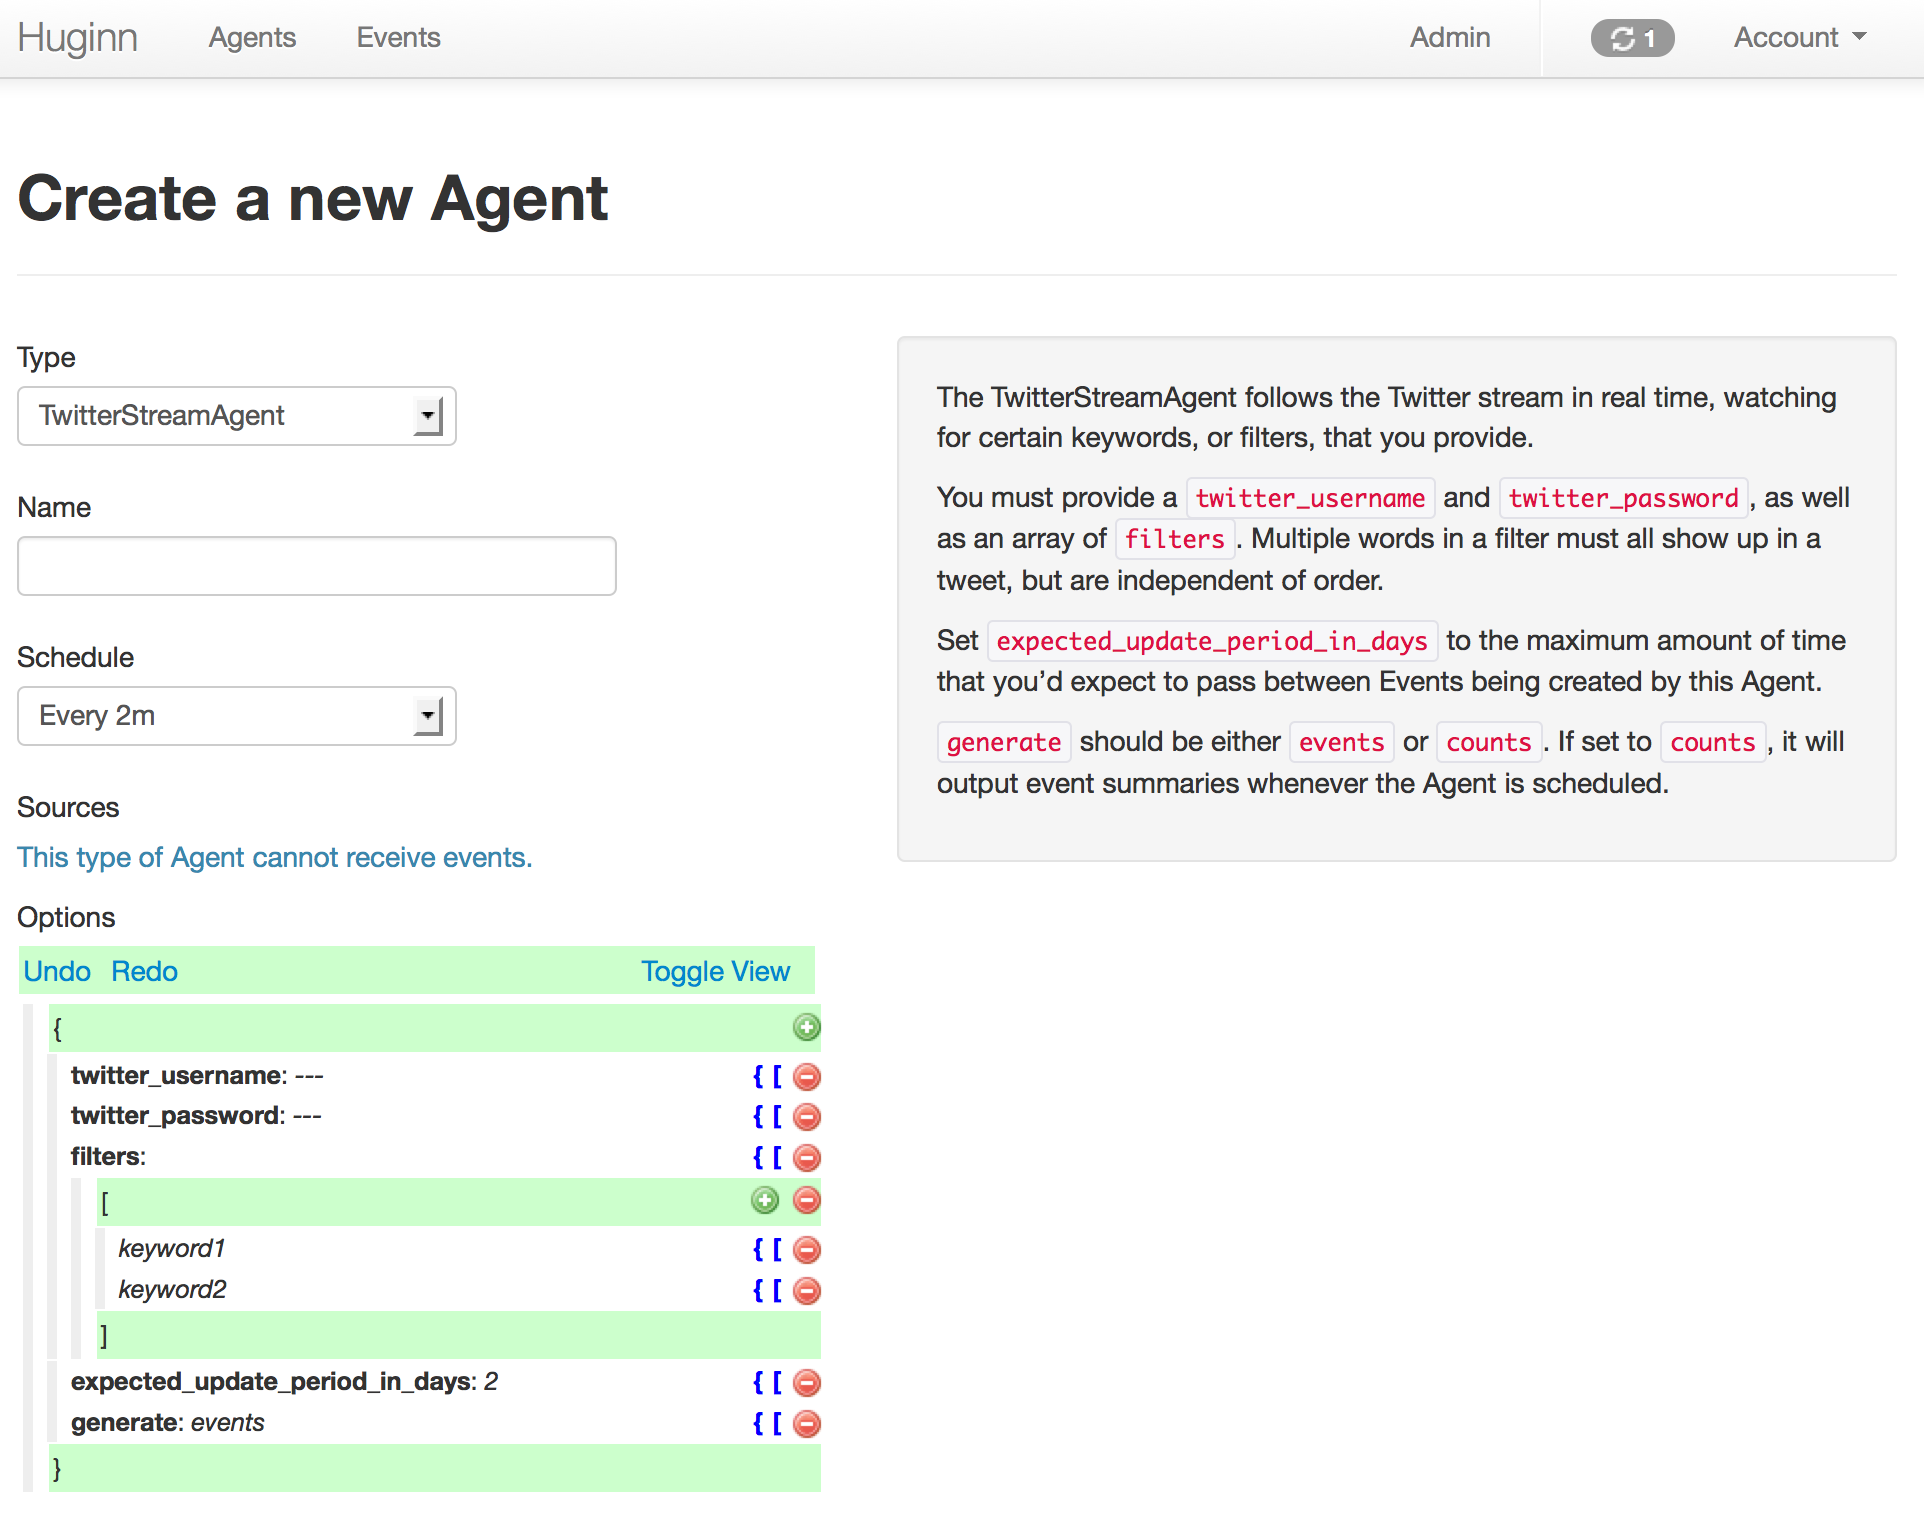 Making a new agent